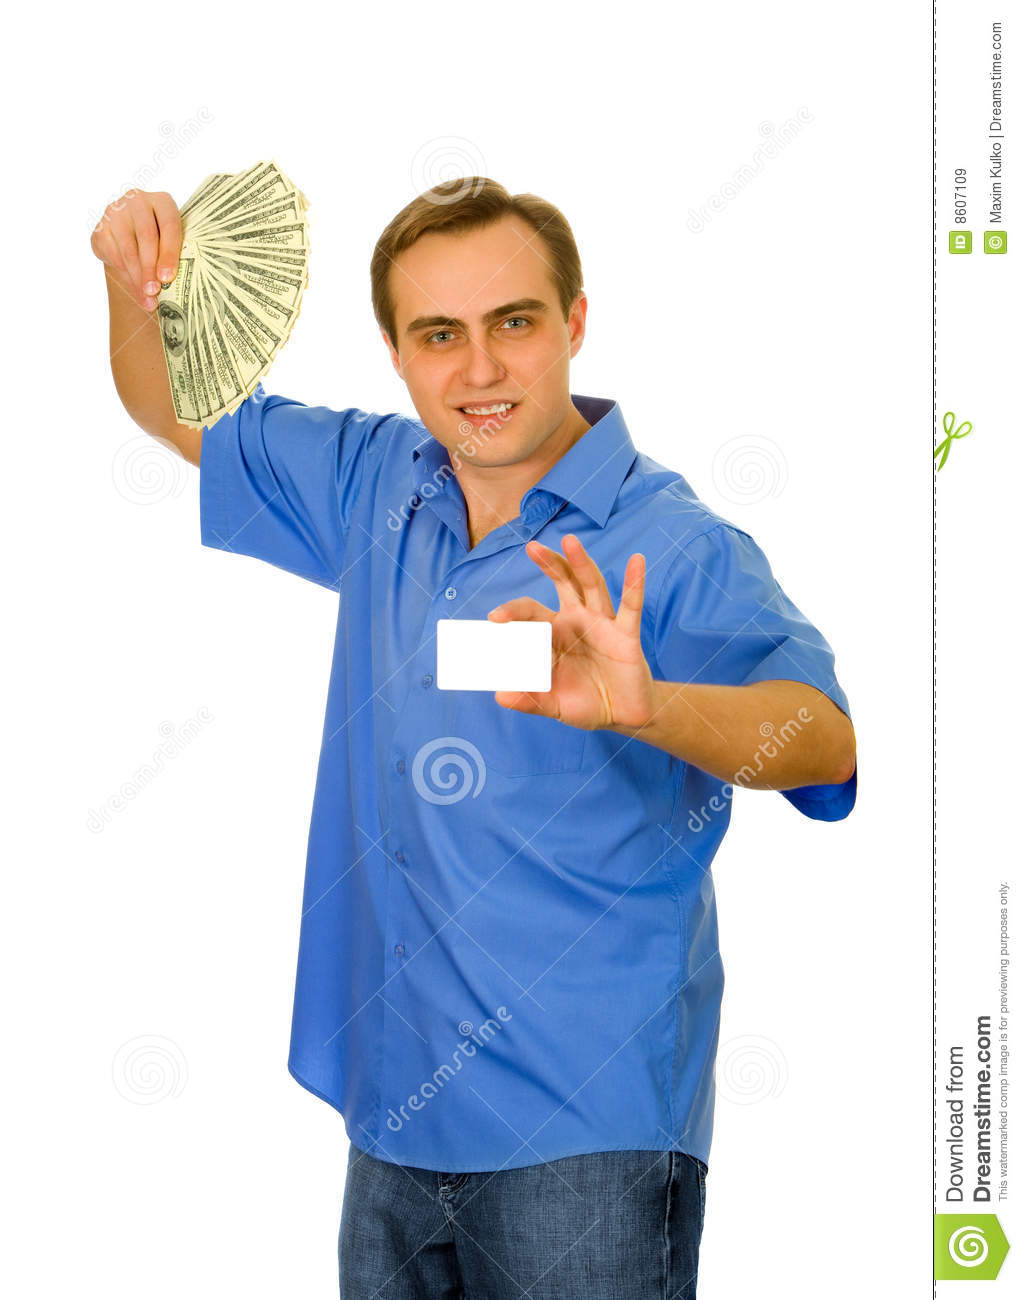 Guy with fan of dollars and a business card stock image image of guy with fan of dollars and a business card colourmoves